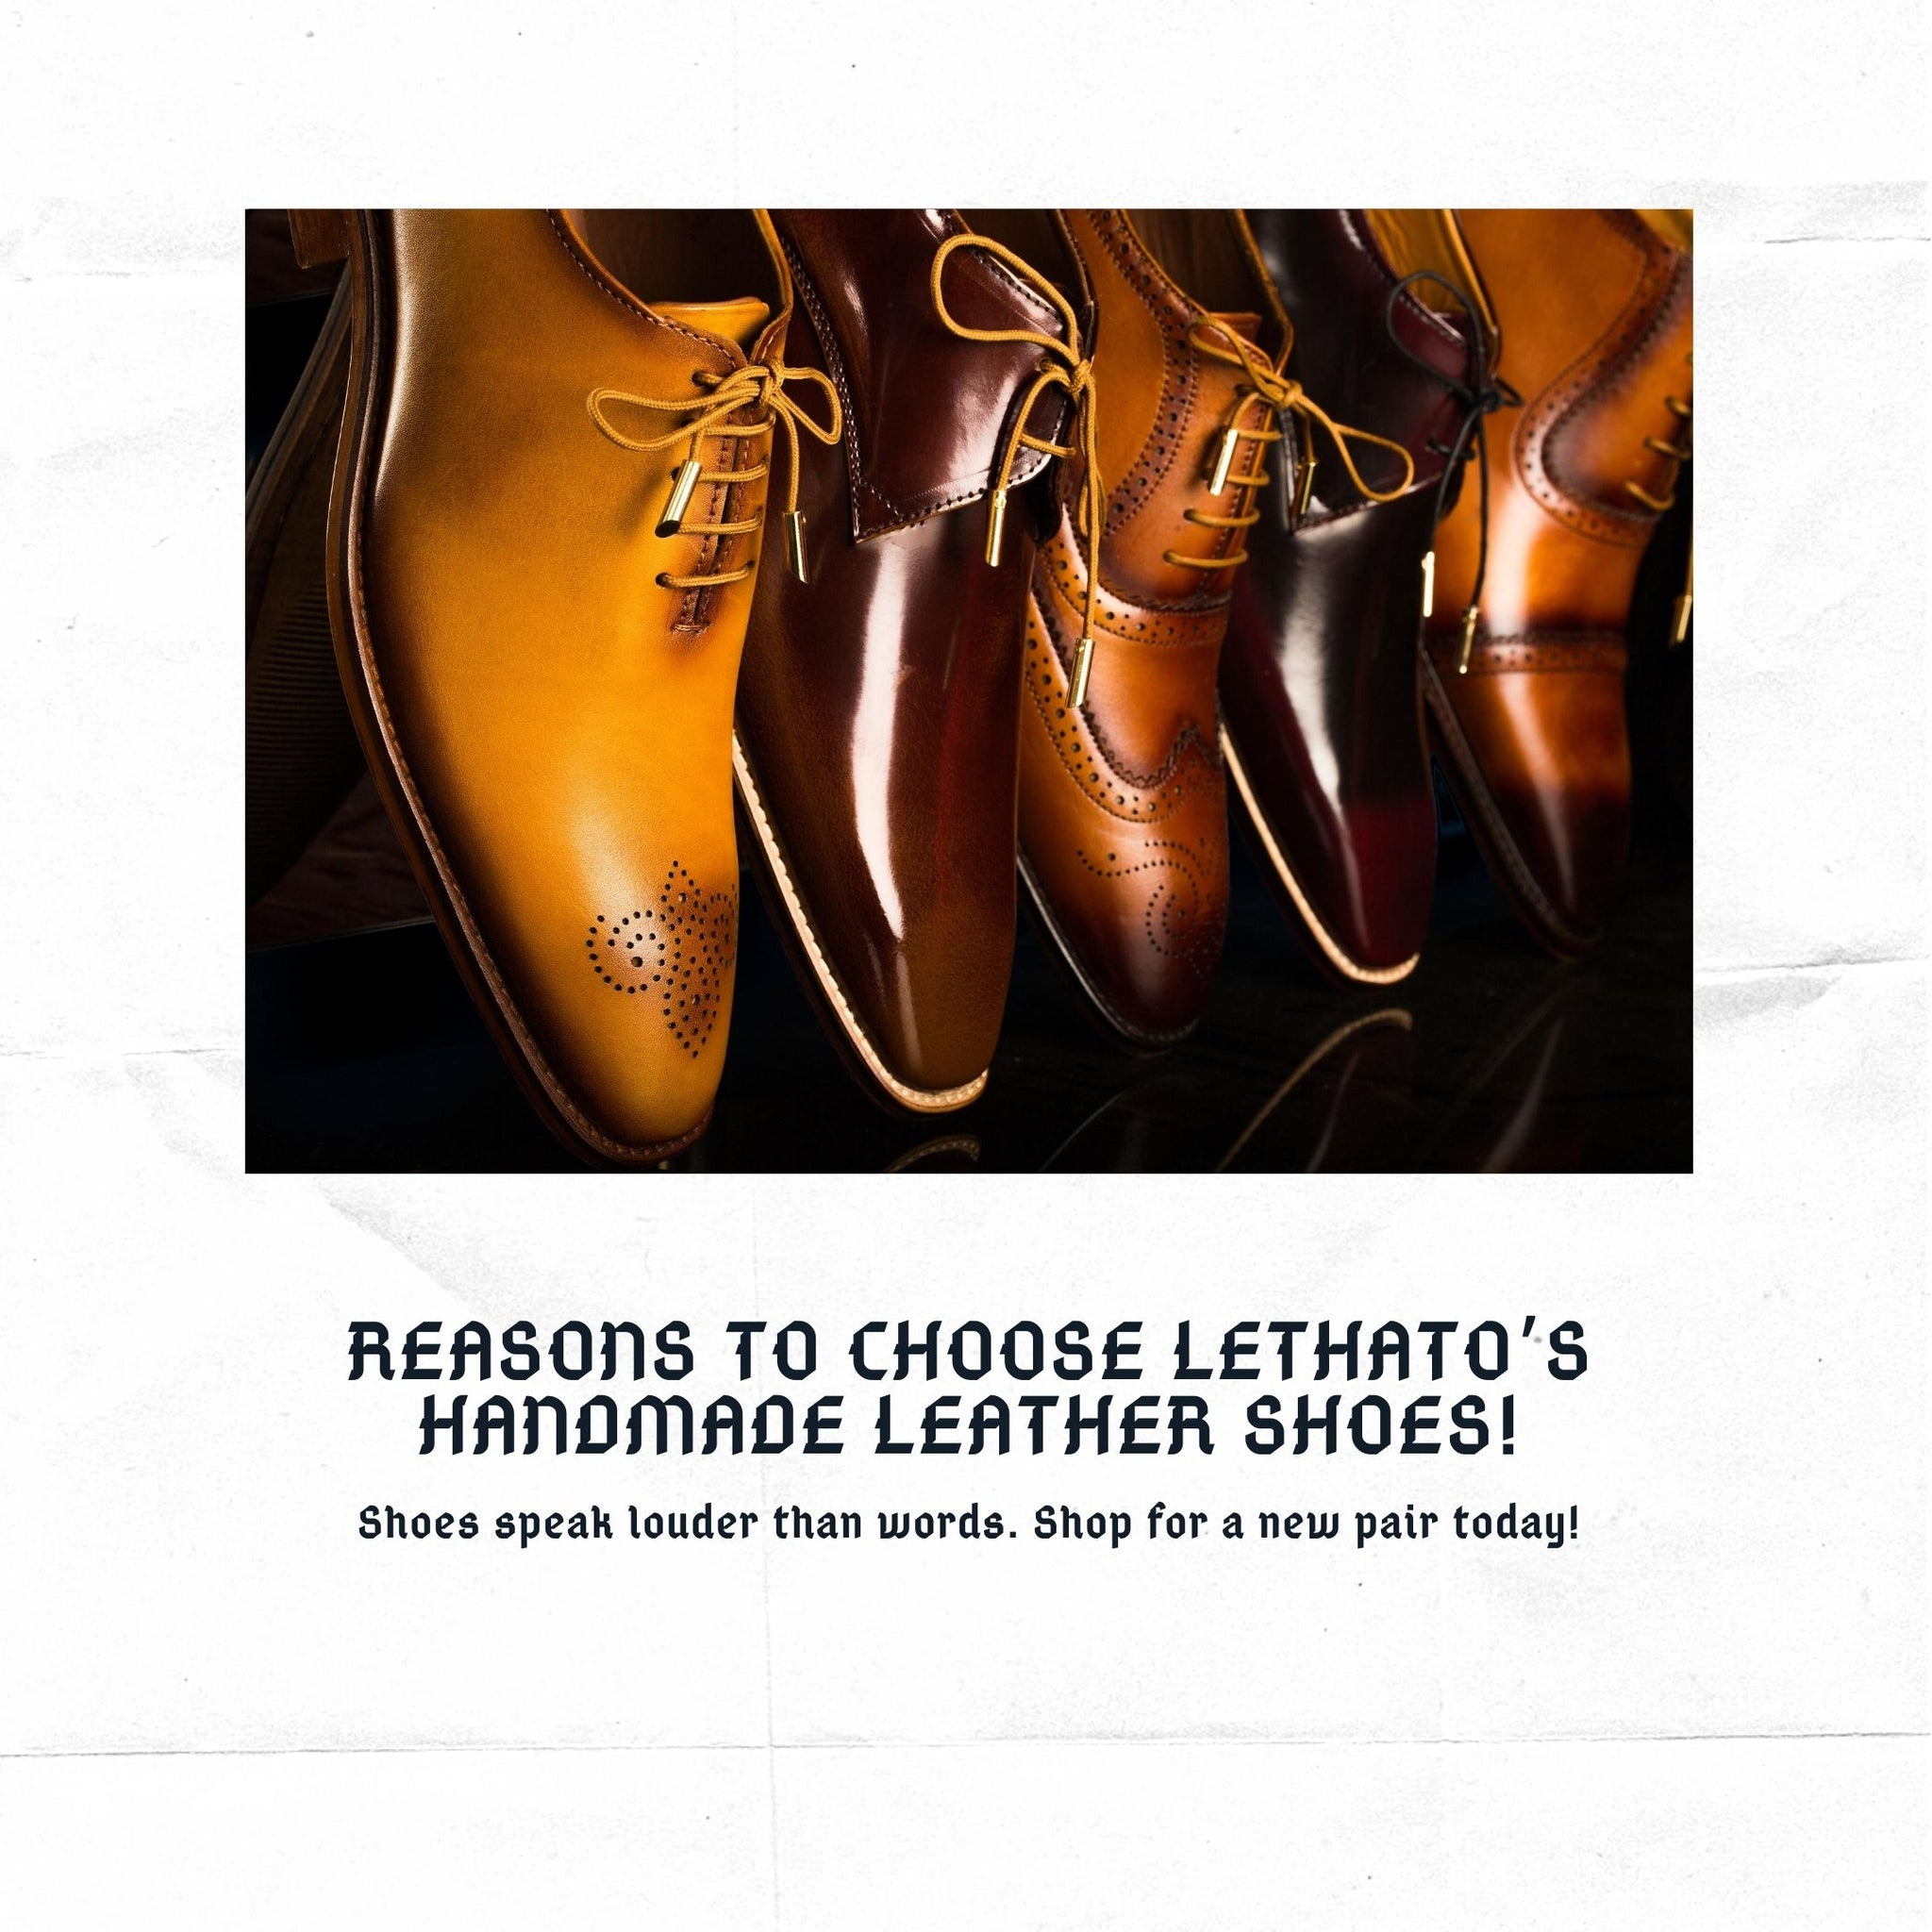 Reasons To Choose Lethato's Handmade Leather Shoes!